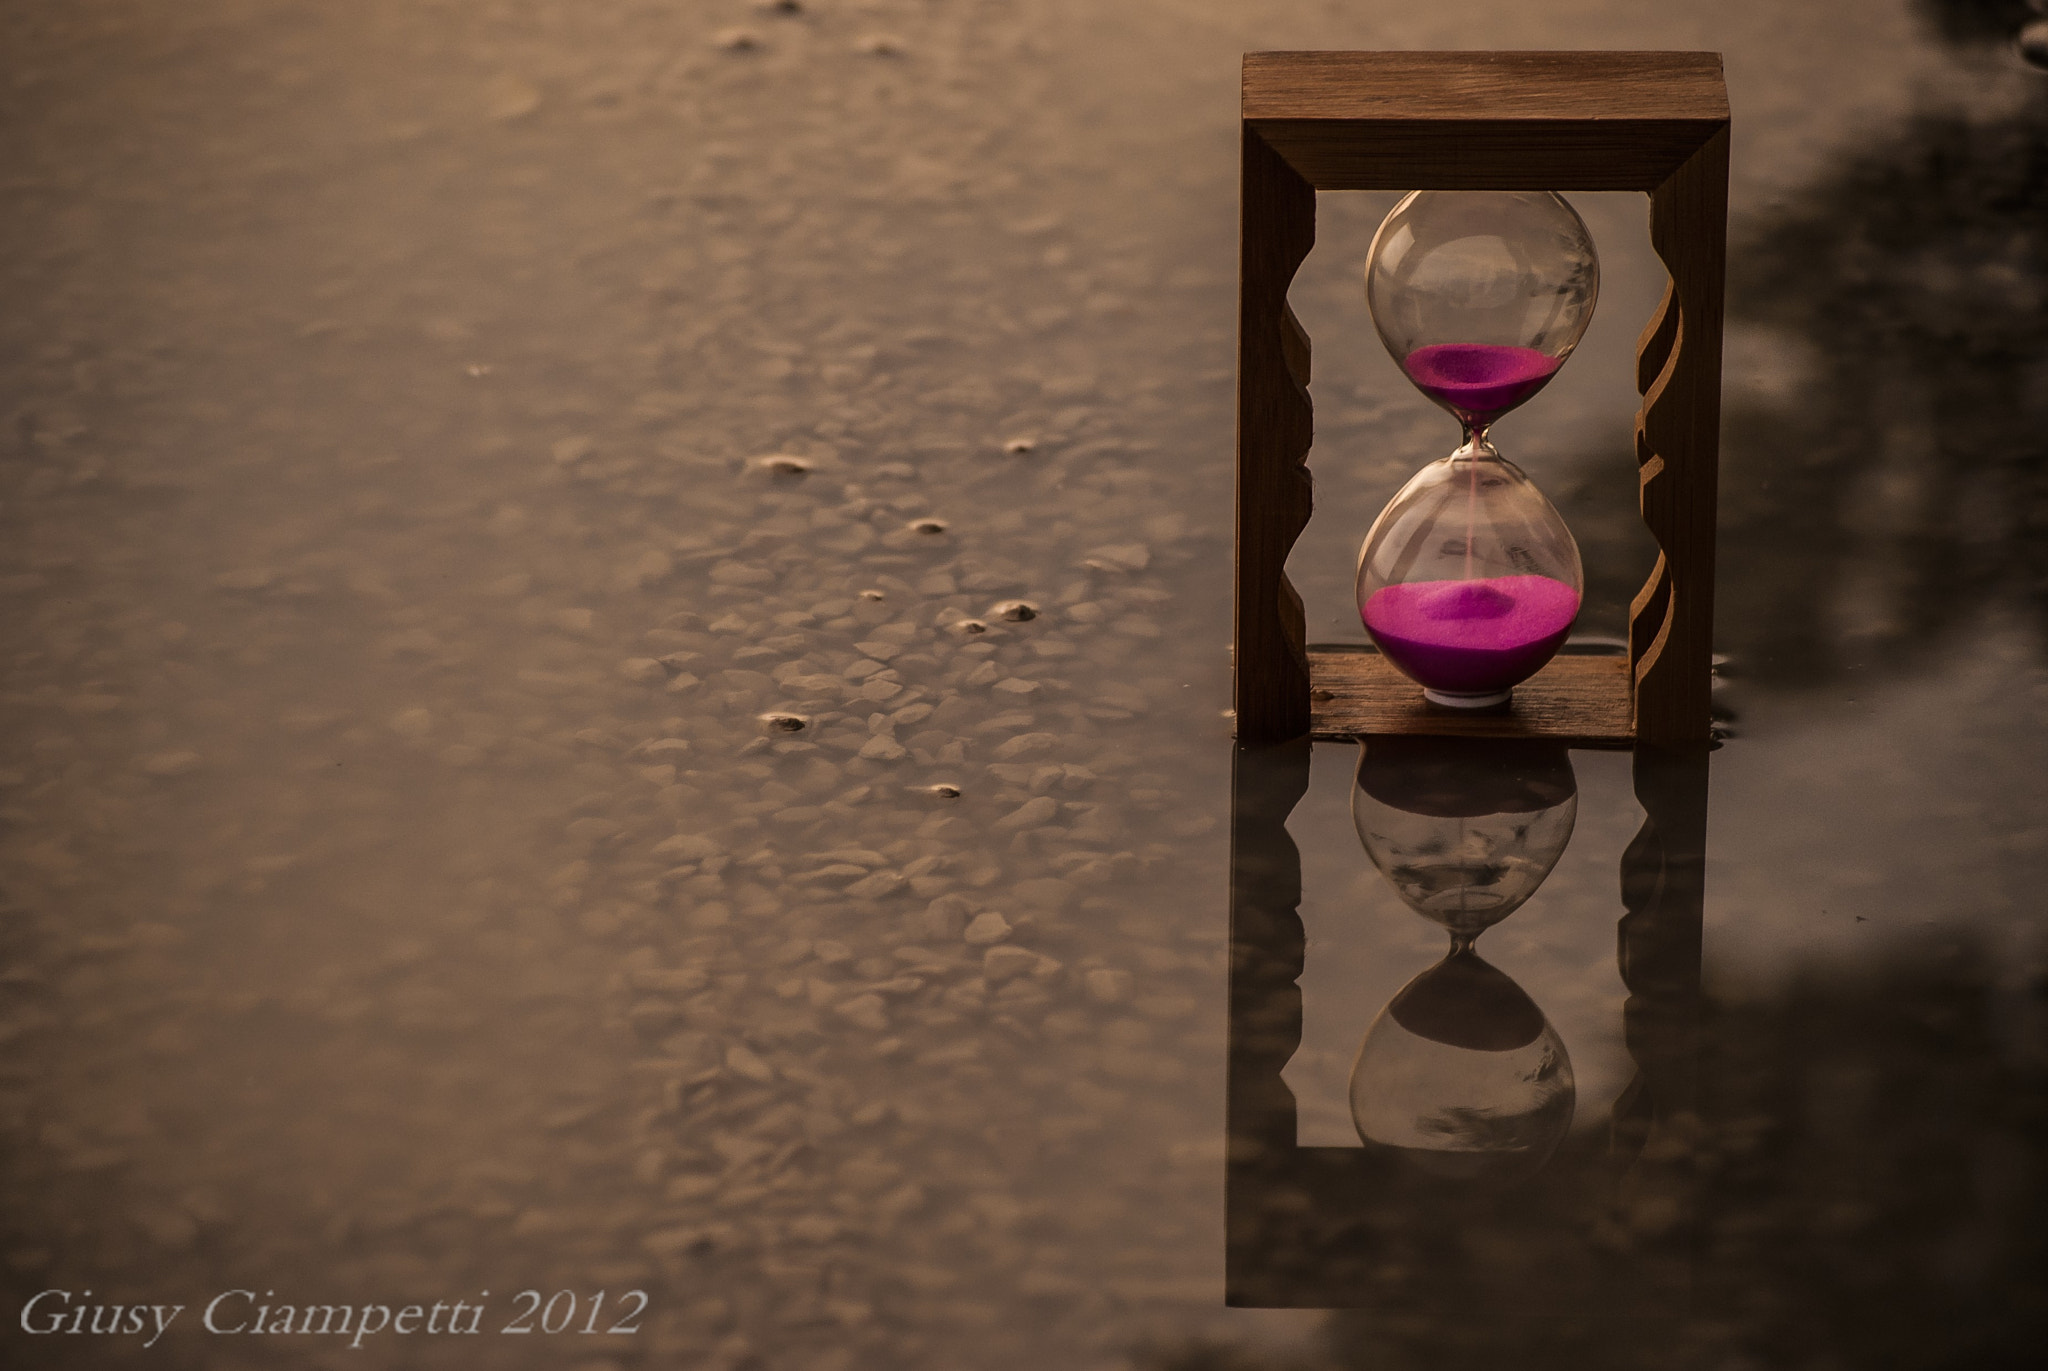 Photograph Reflection Time by Giusy Ciampetti on 500px